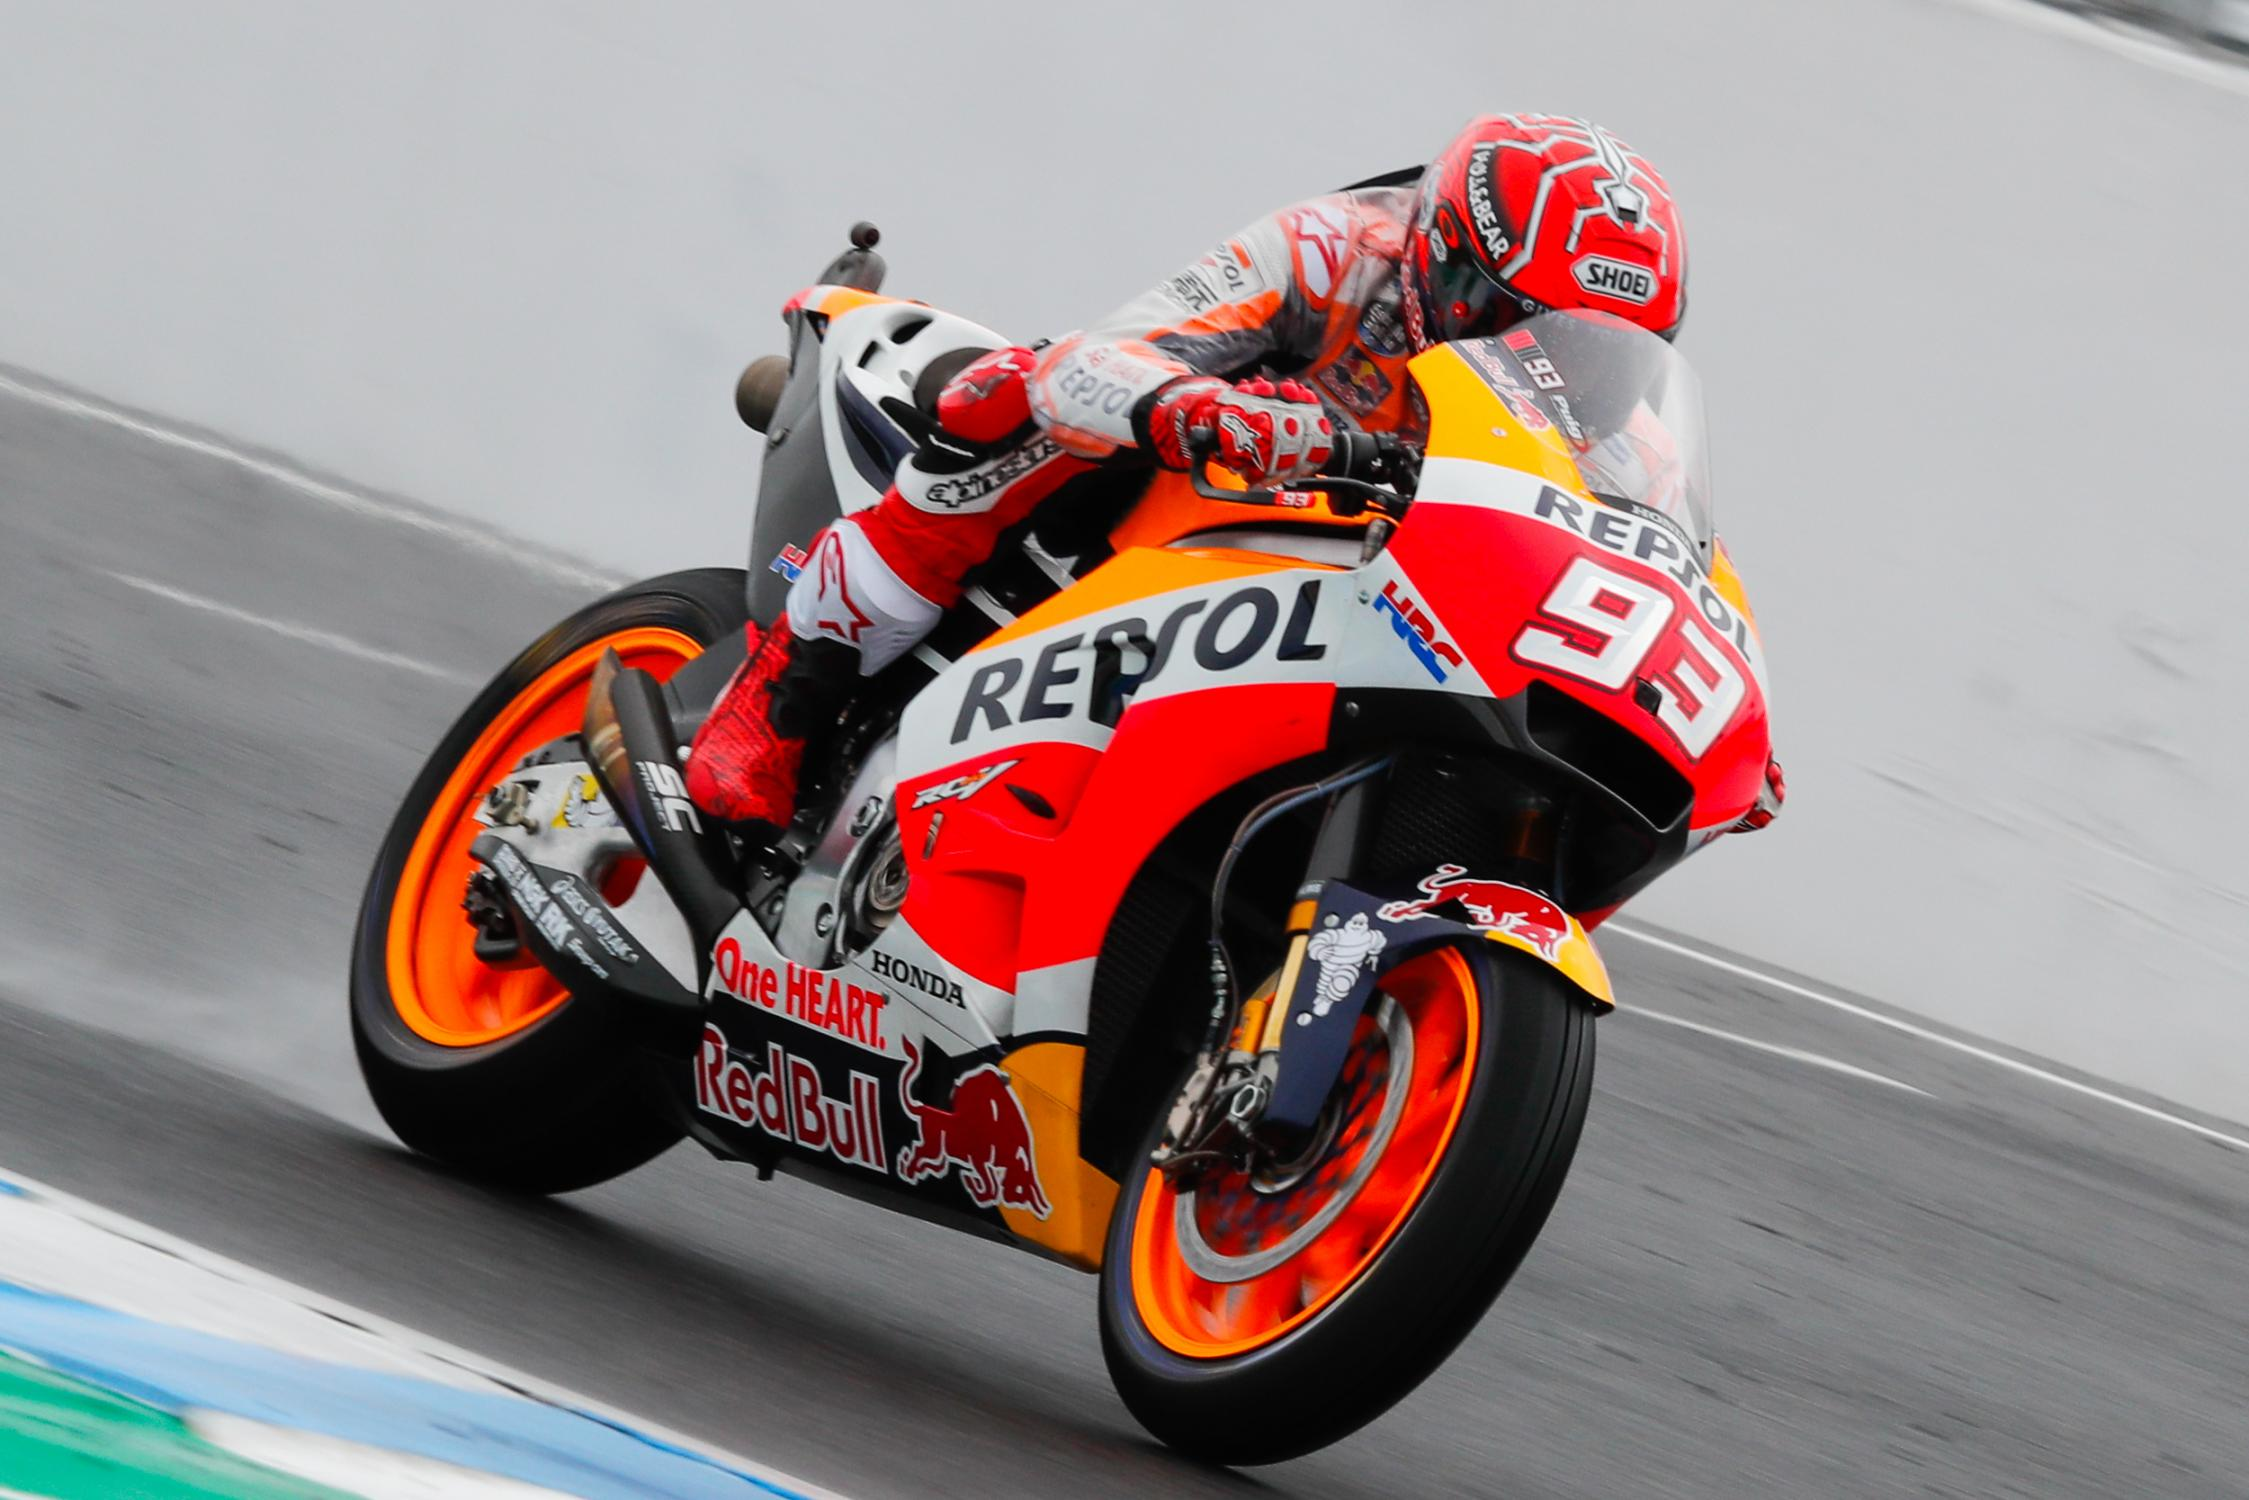 93-marc-marquez-esp_29i2623.gallery_full_top_fullscreen.jpg